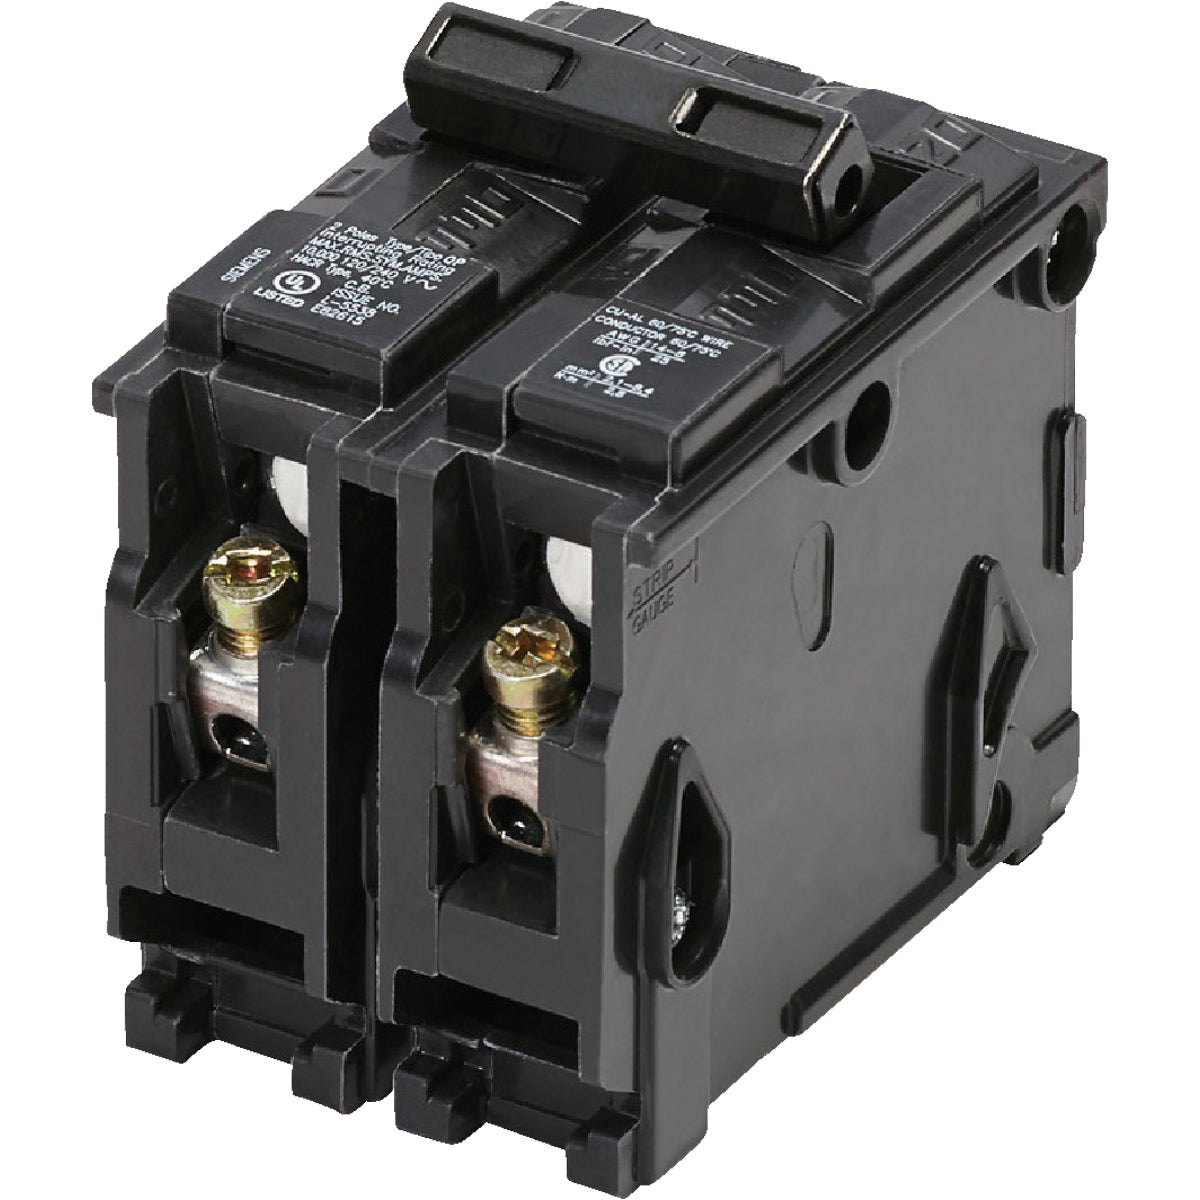 50A 2P CIRCUIT BREAKER - ICBQ250 by Connecticut Electric